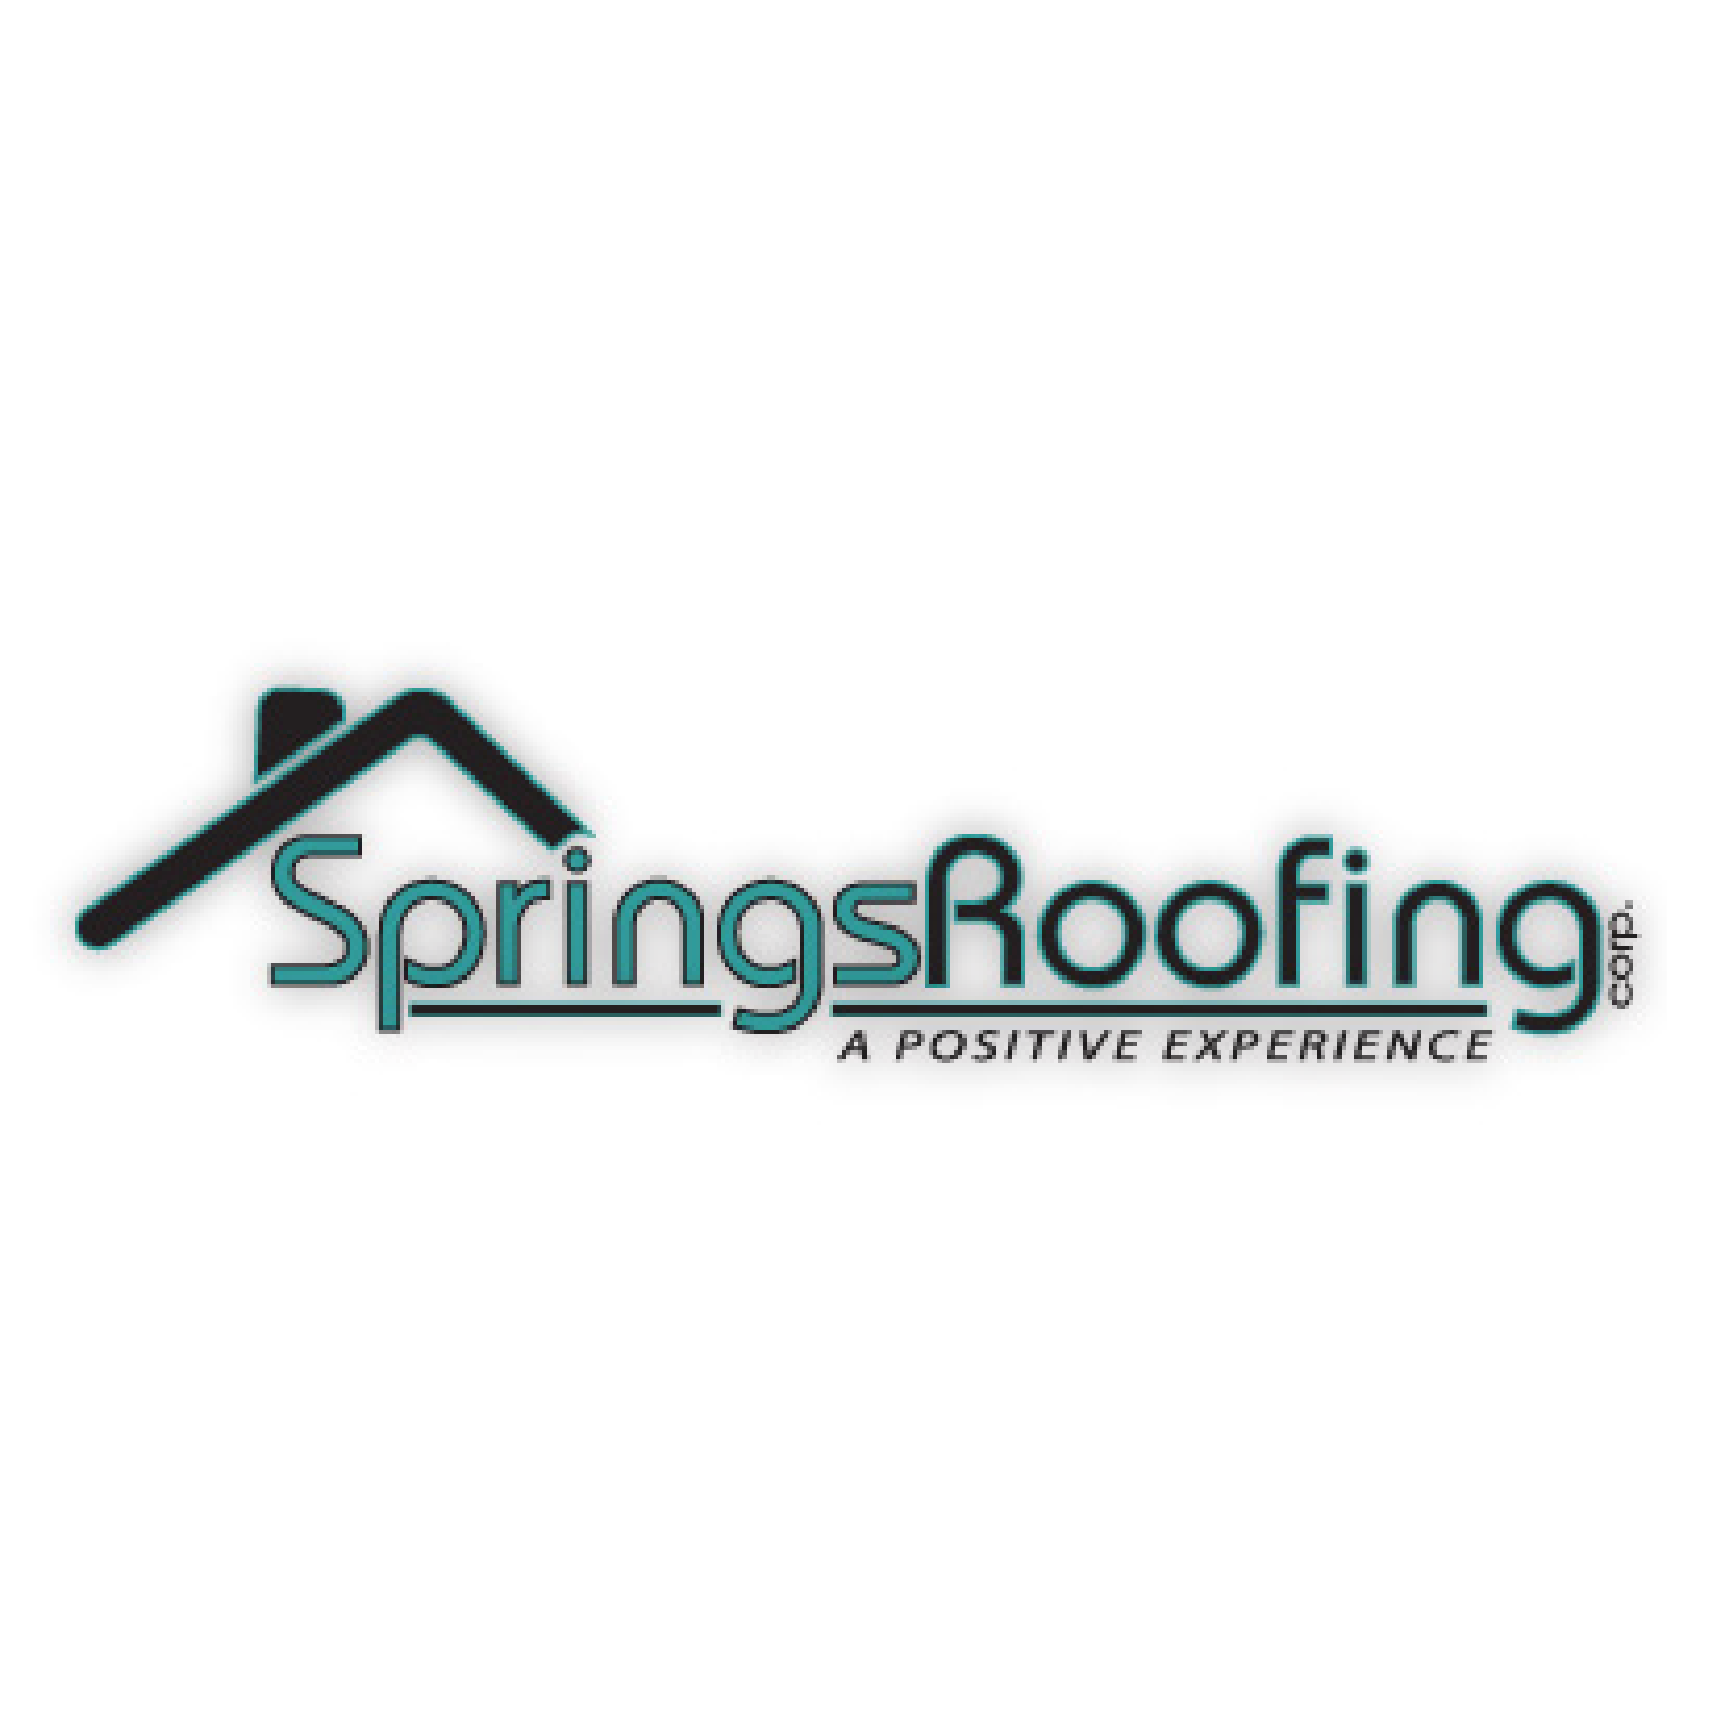 Springs Roofing Inc